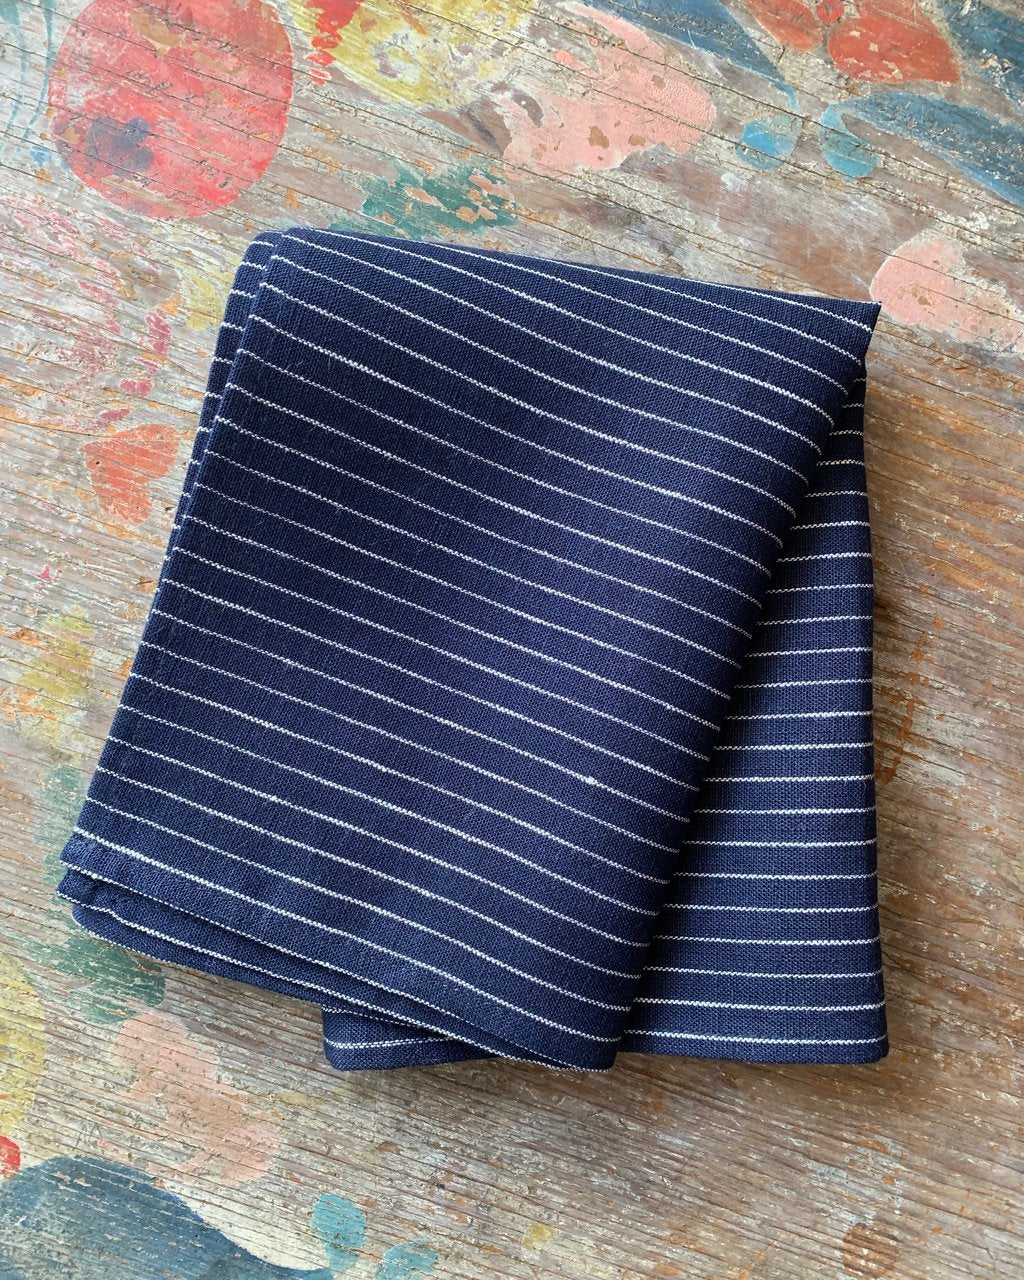 Kitchen Cloth - NAVY